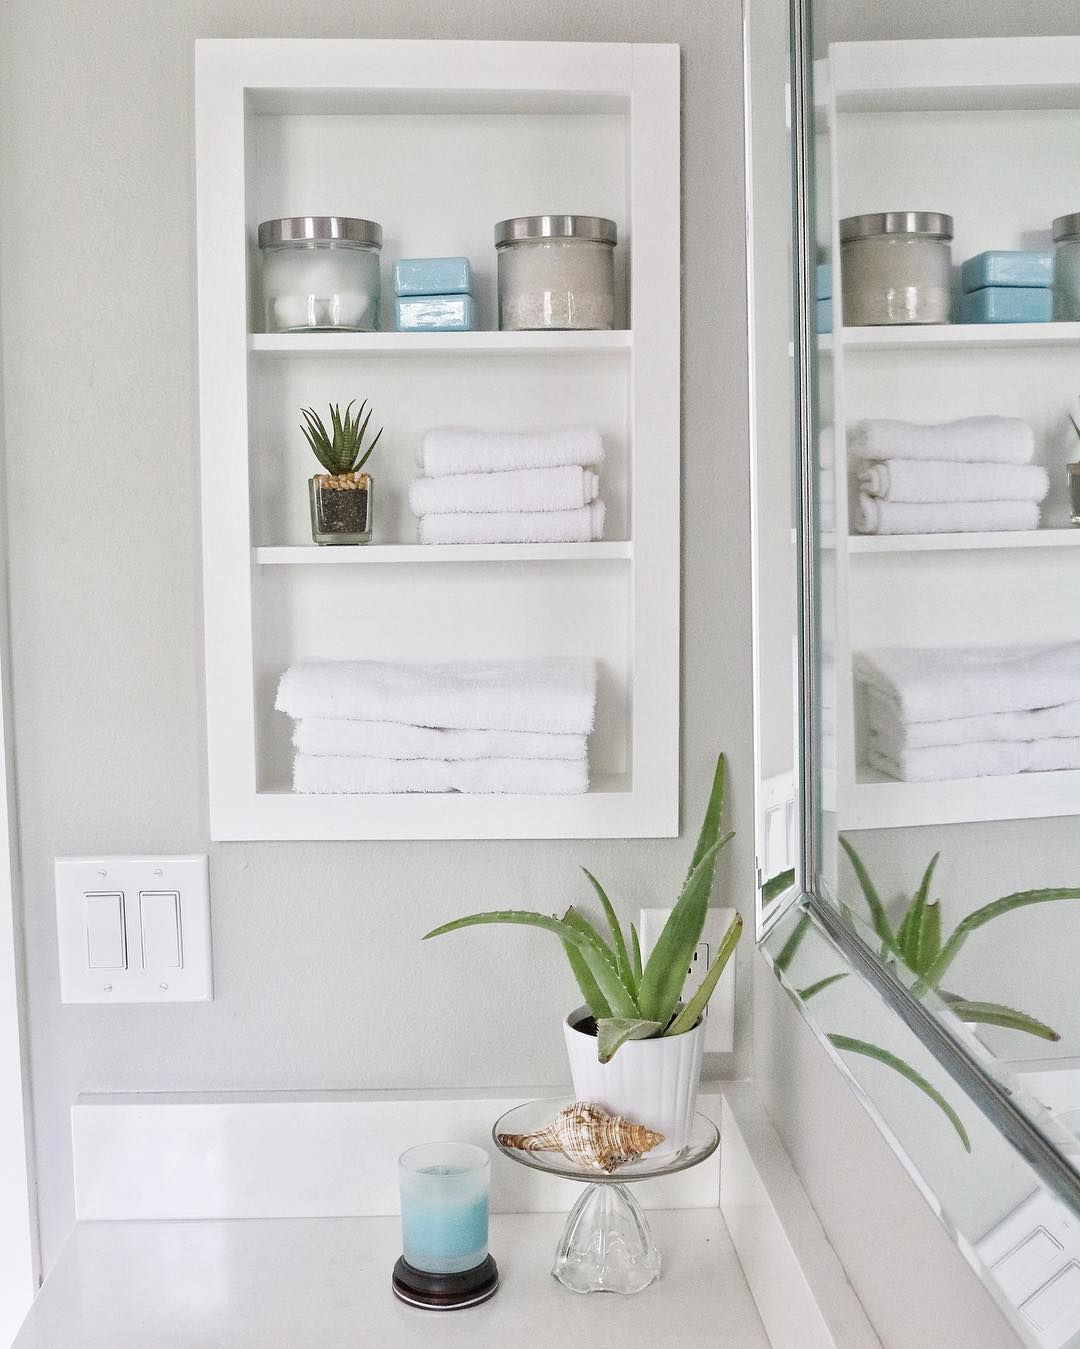 Pin By Kristy Fountain On Airbnb Recessed Shelves Bathroom